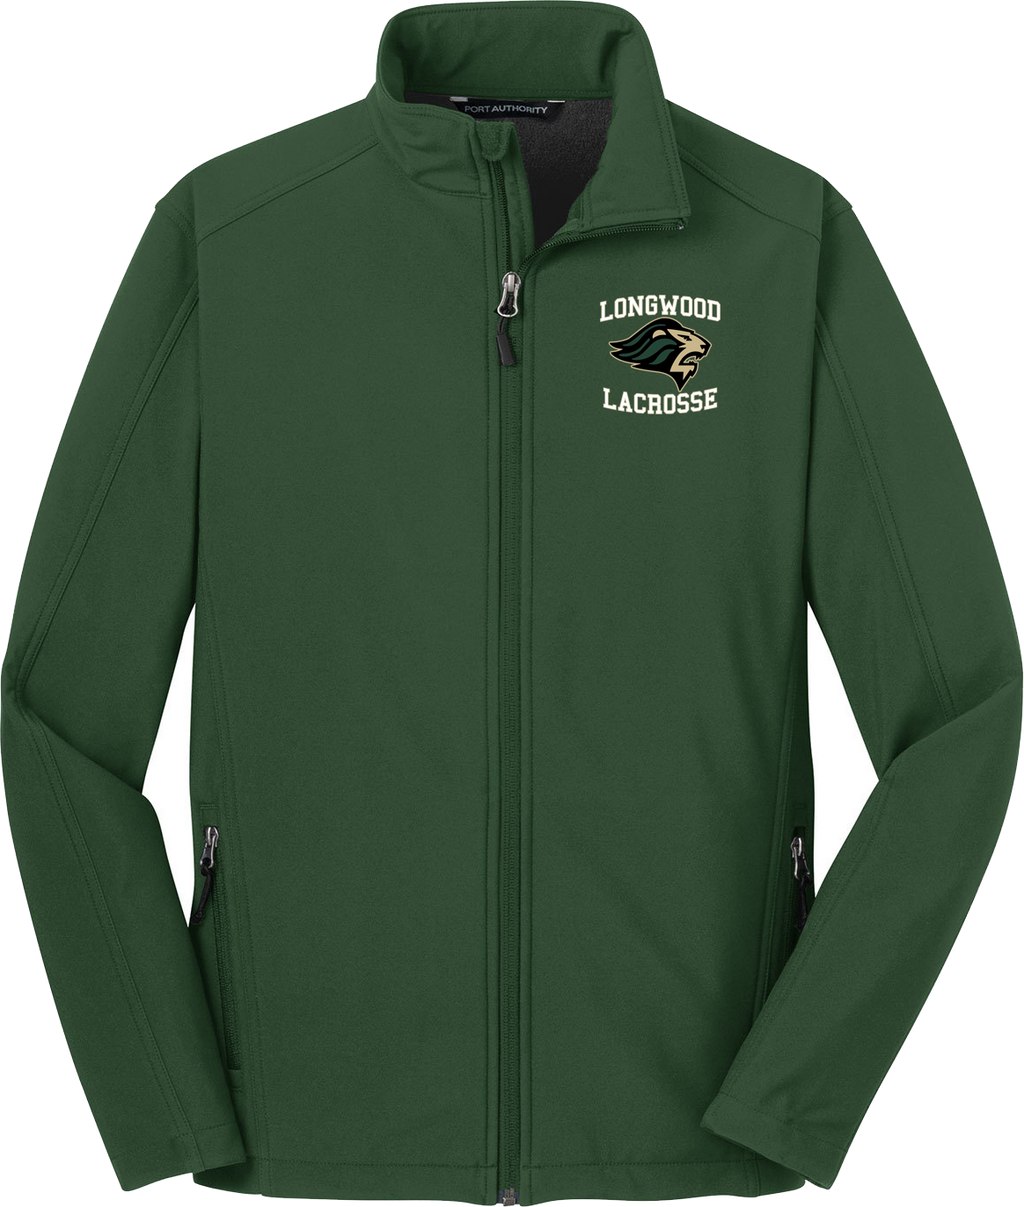 Longwood Lacrosse Green Soft Shell Jacket